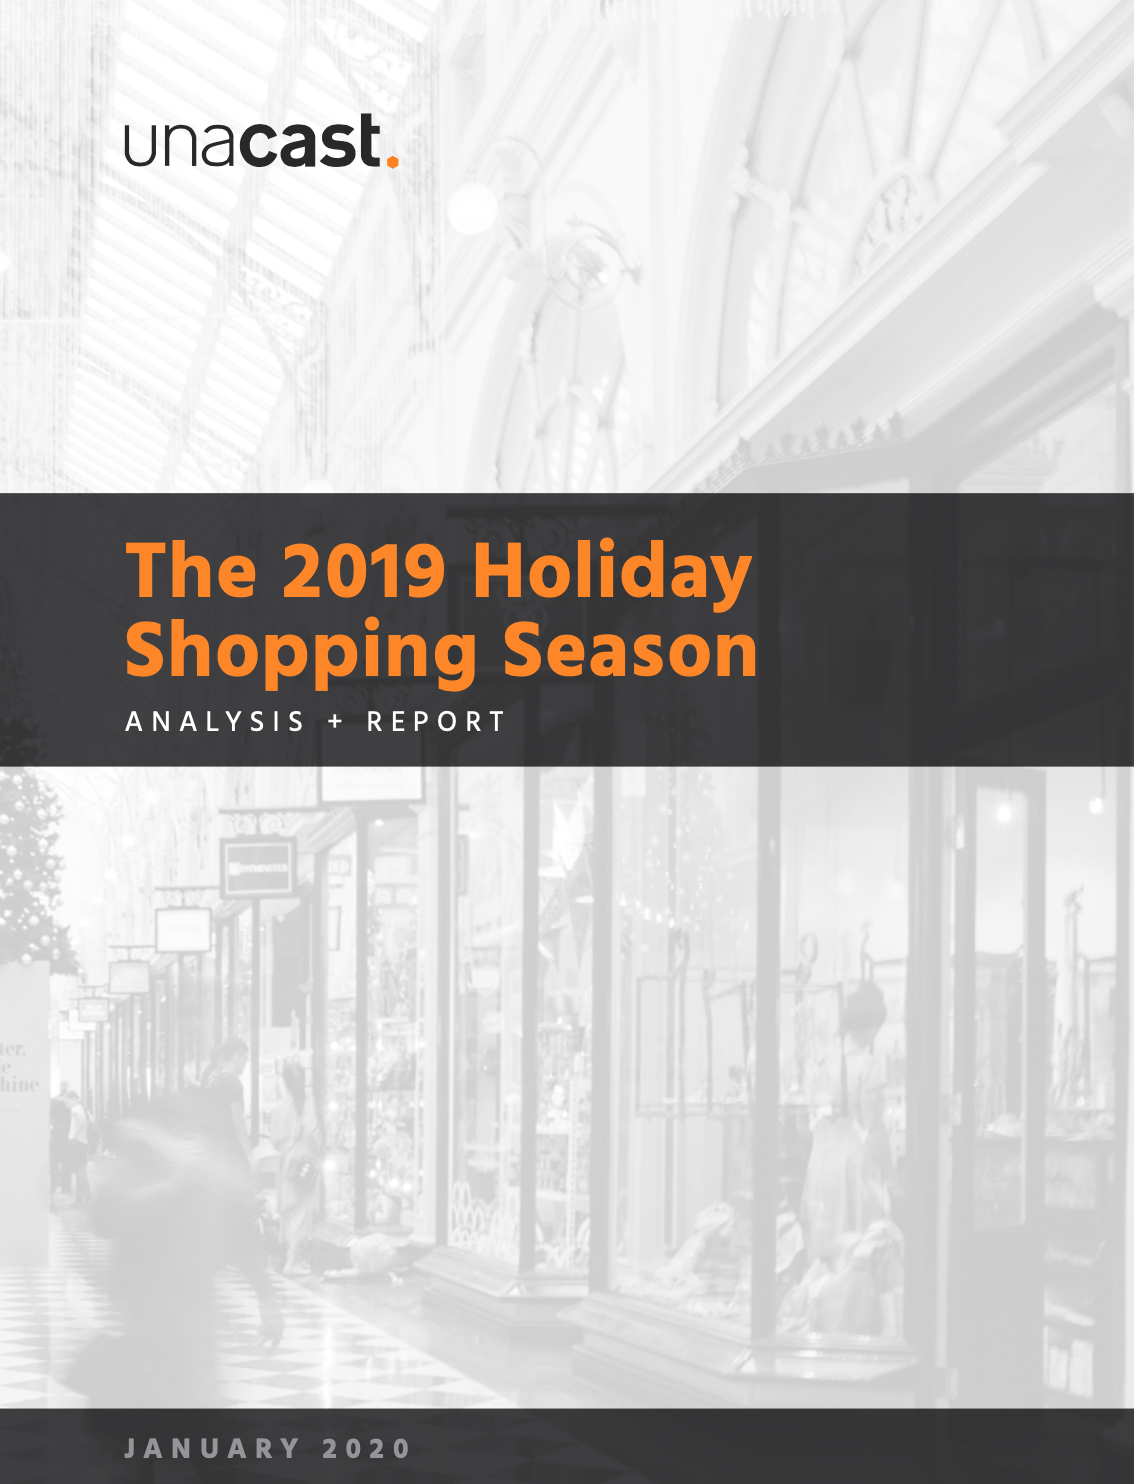 2019 Holiday Shopping Season Analysis and Report